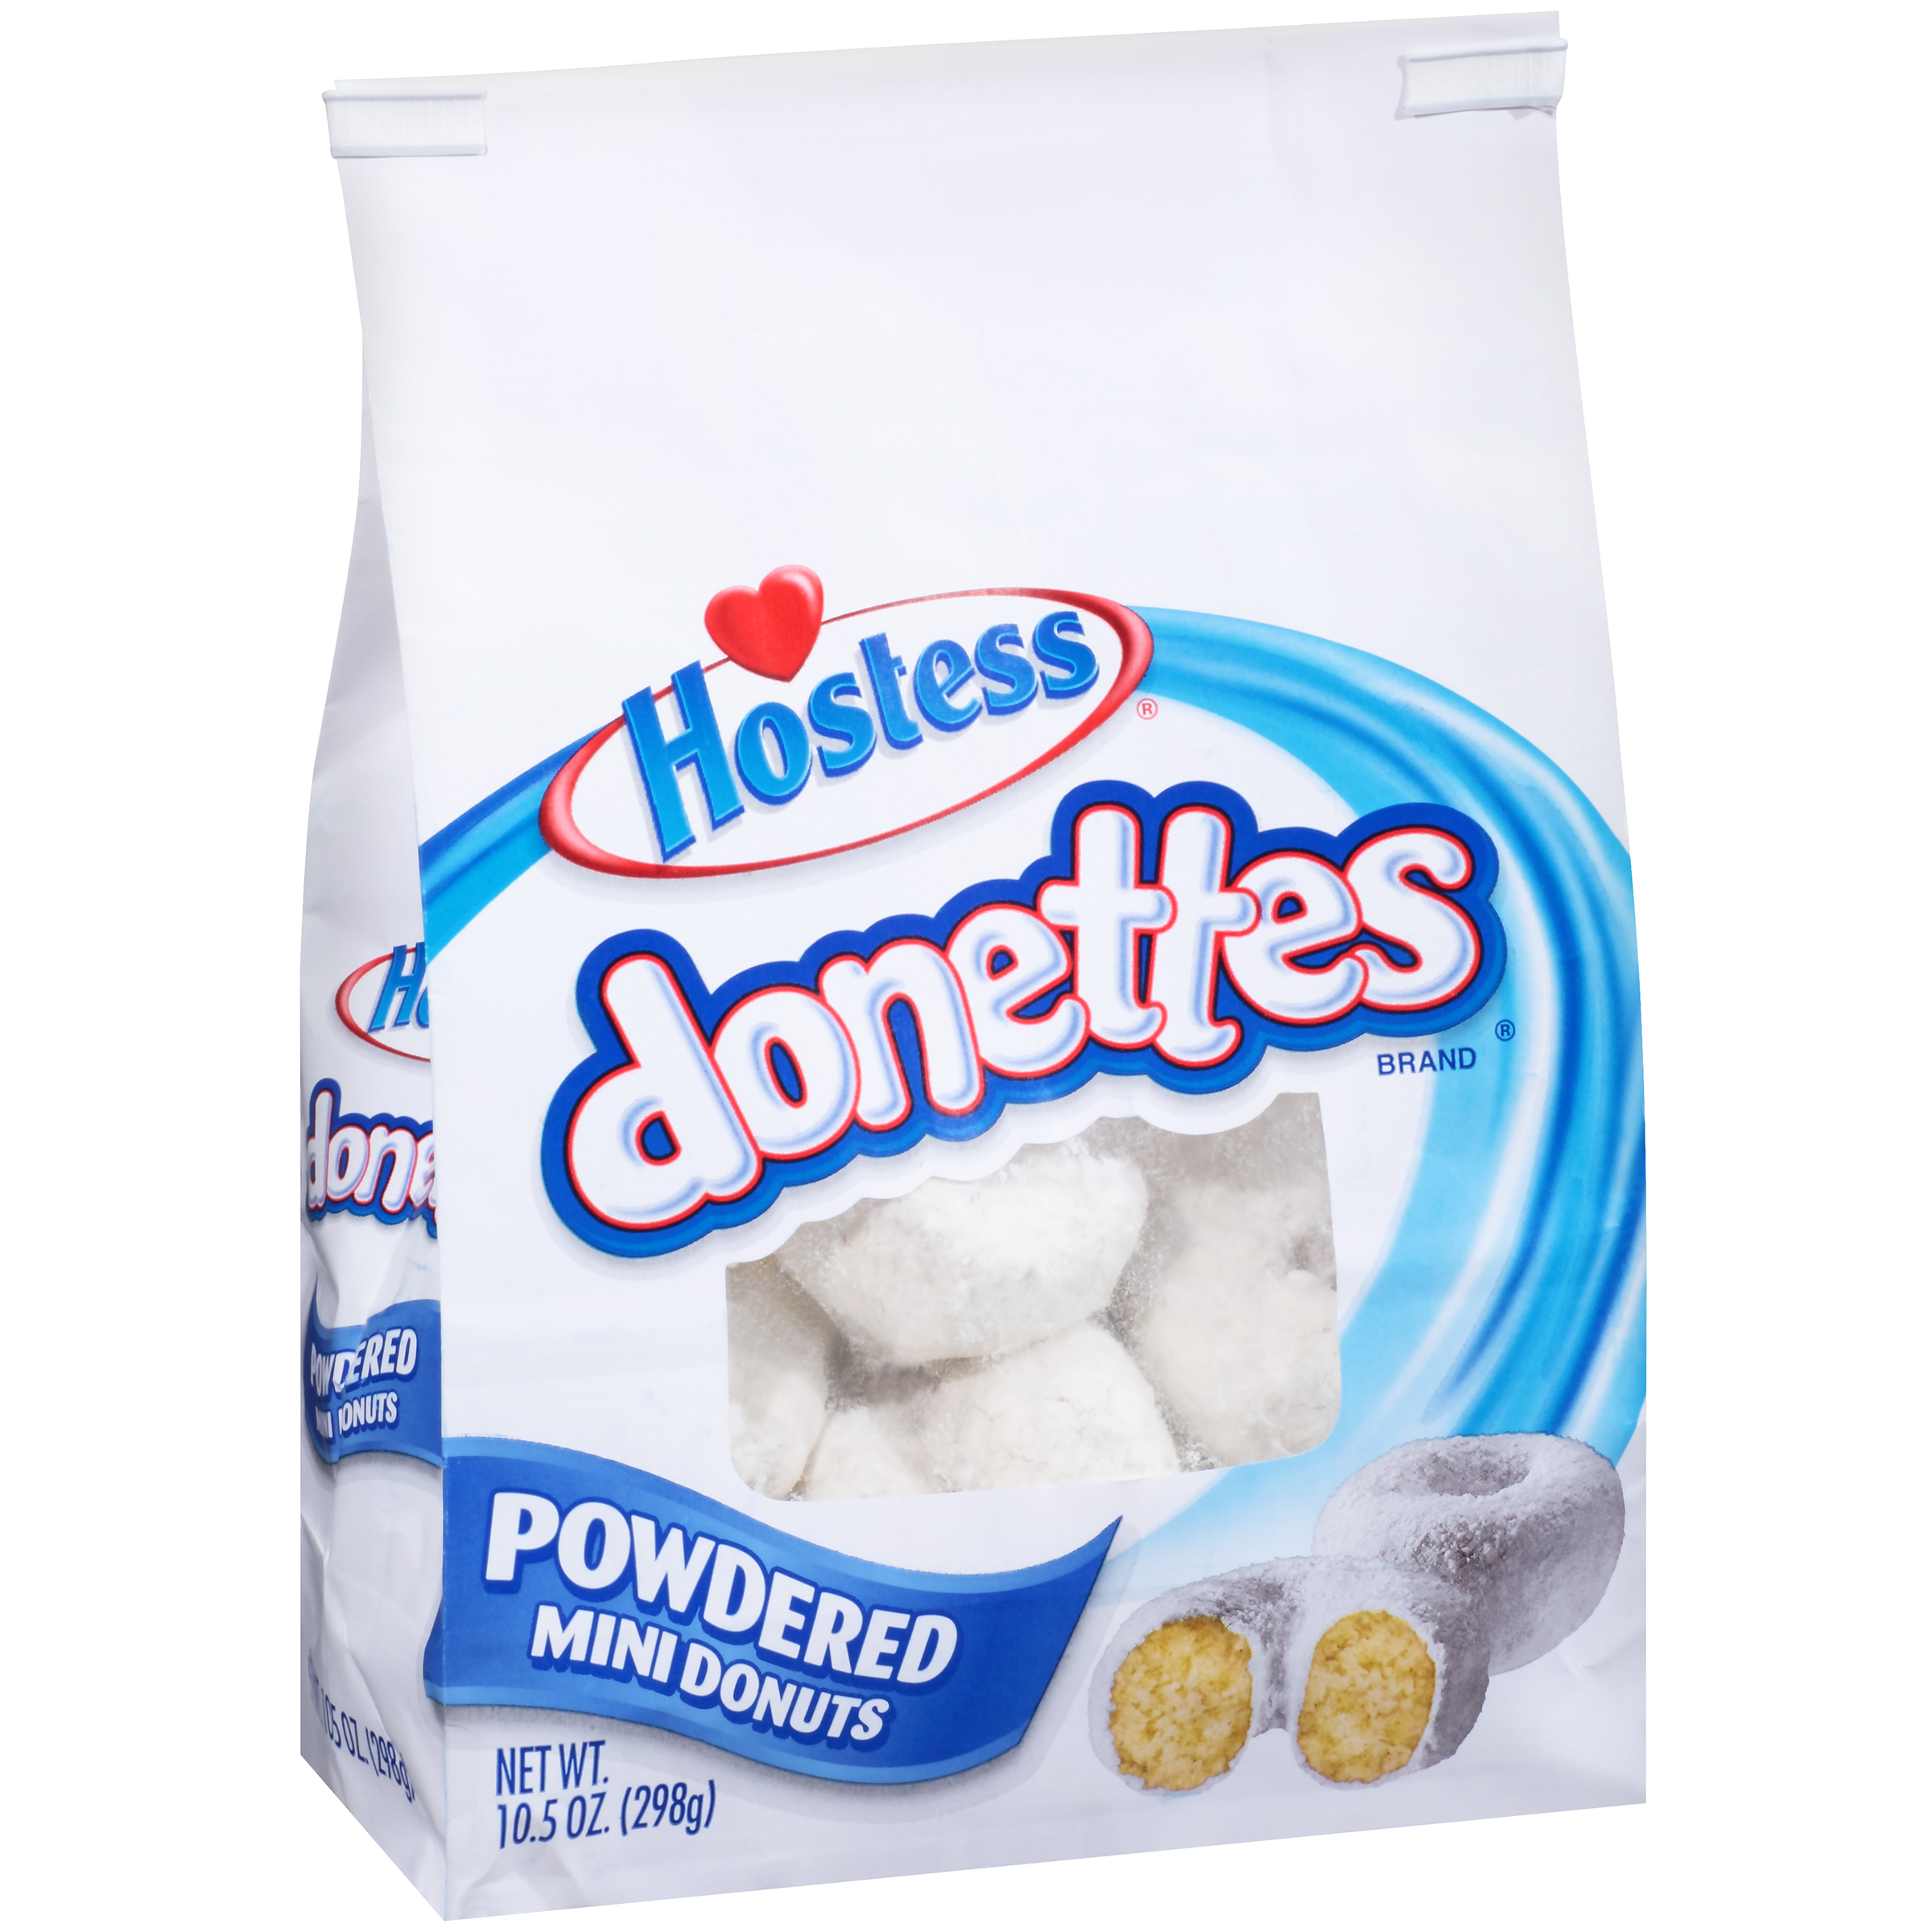 Hostess�� Donettes�� Powdered Mini Donuts 10.5 oz. Stand-Up Bag